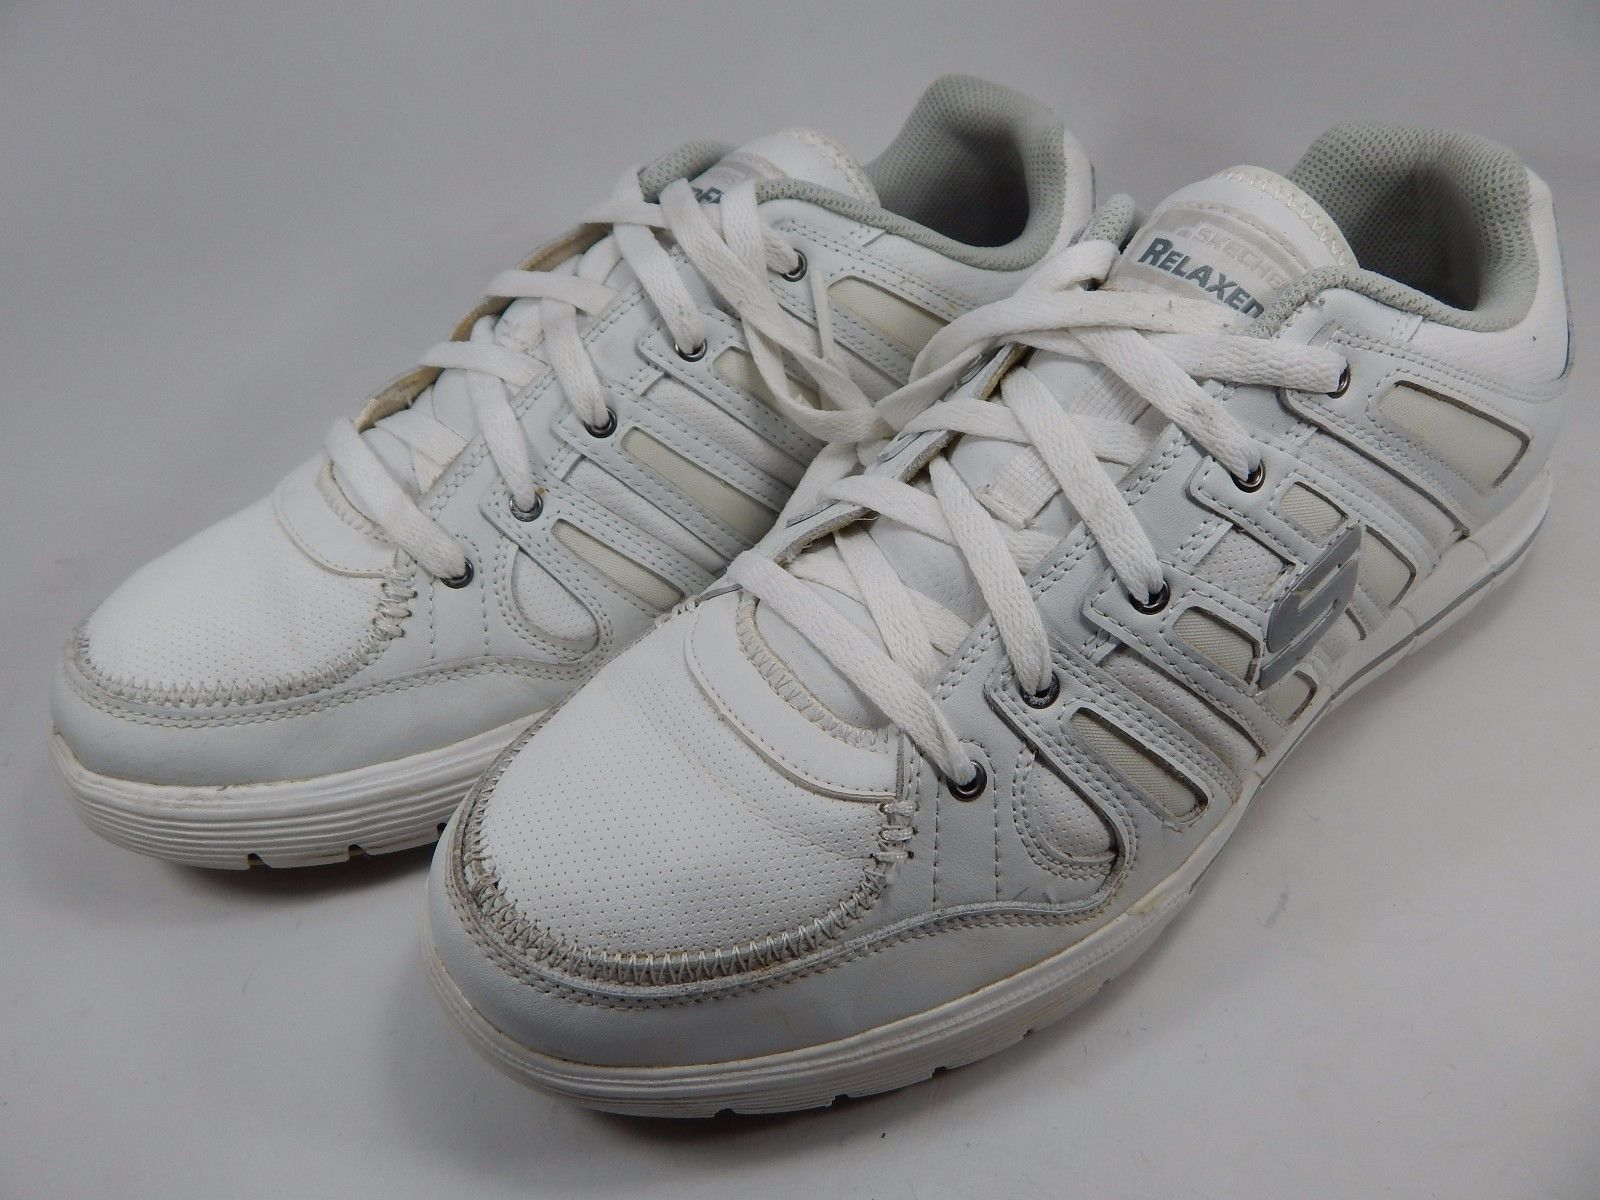 Skechers Relaxed Fit Arcade II Men's Casual Shoes Sz US 13 M (D) EU 47.5 White